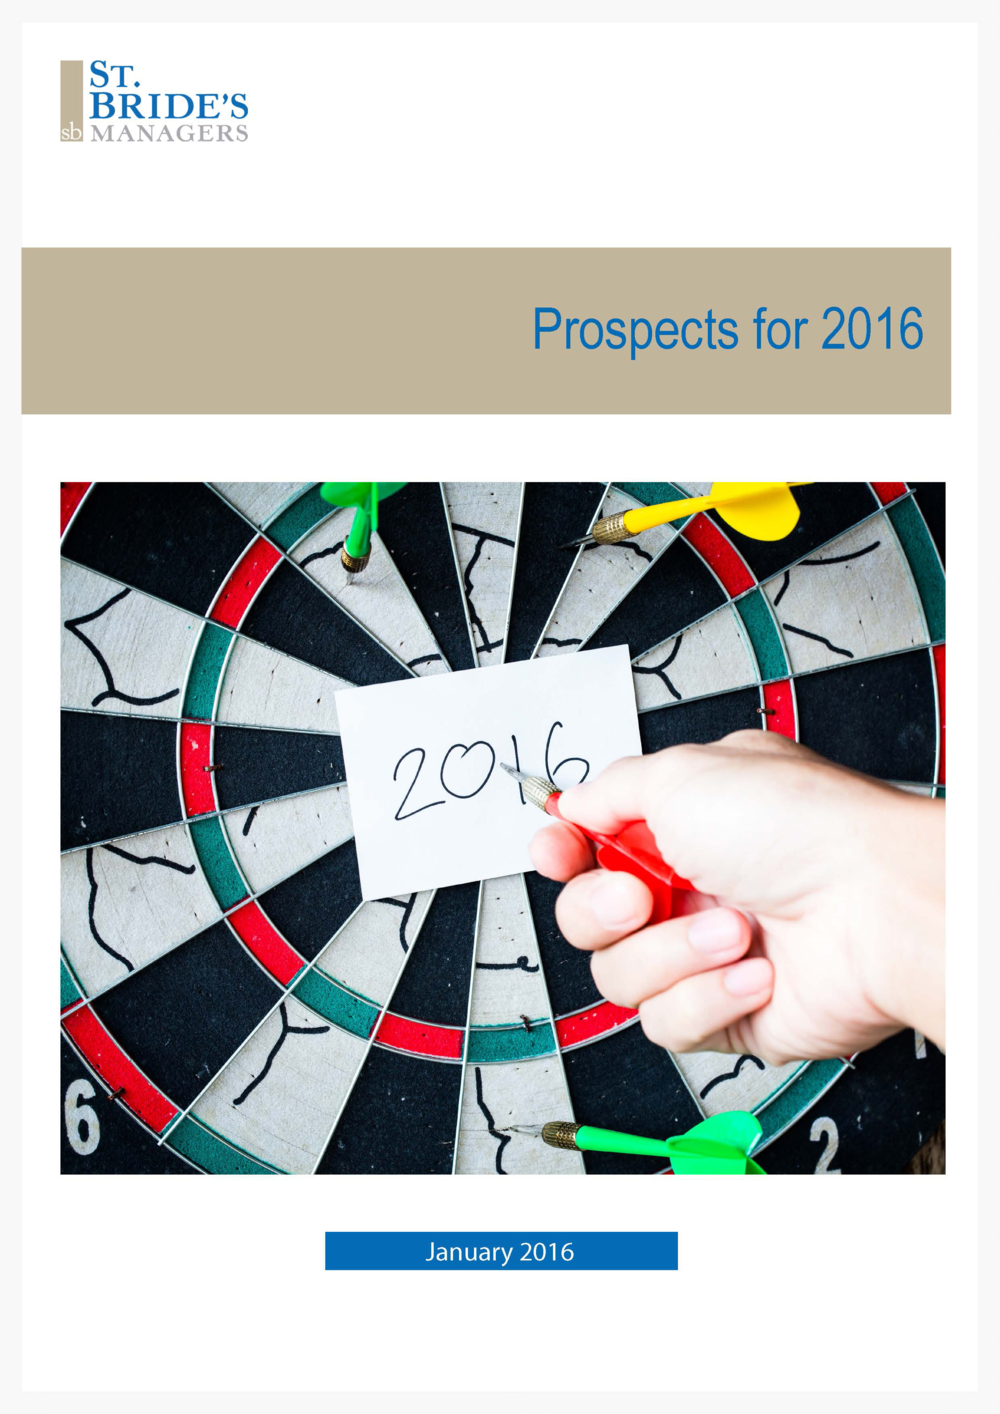 Prospects for 2016